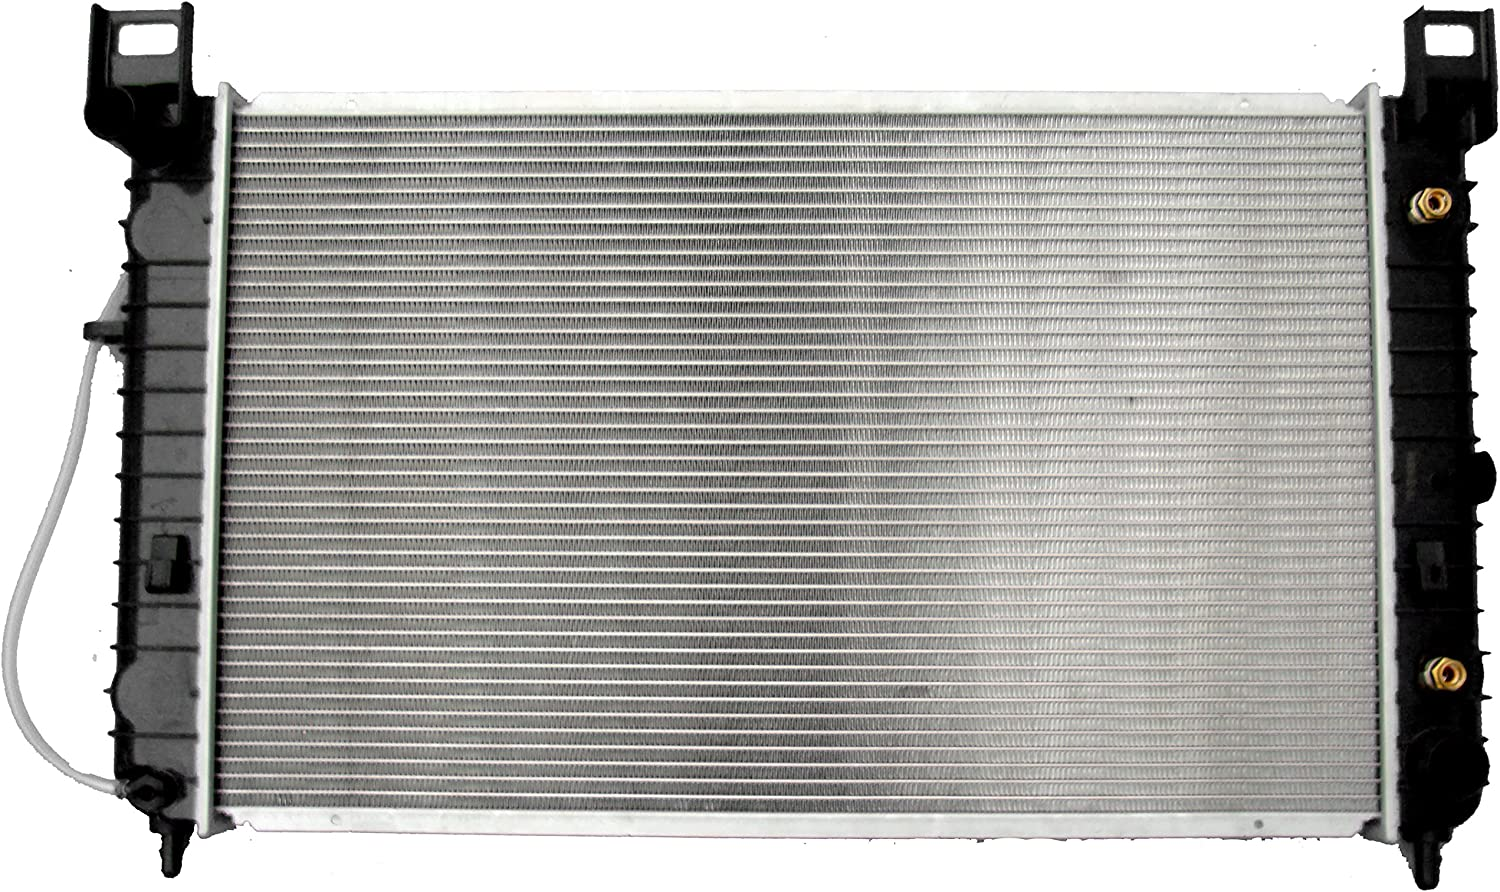 Radiator Pacific Best Inc For//Fit 2334 Chevrolet Silverado GMC Sierra Pickup V8 4.8//5.3 WITHOUT REAR A//C